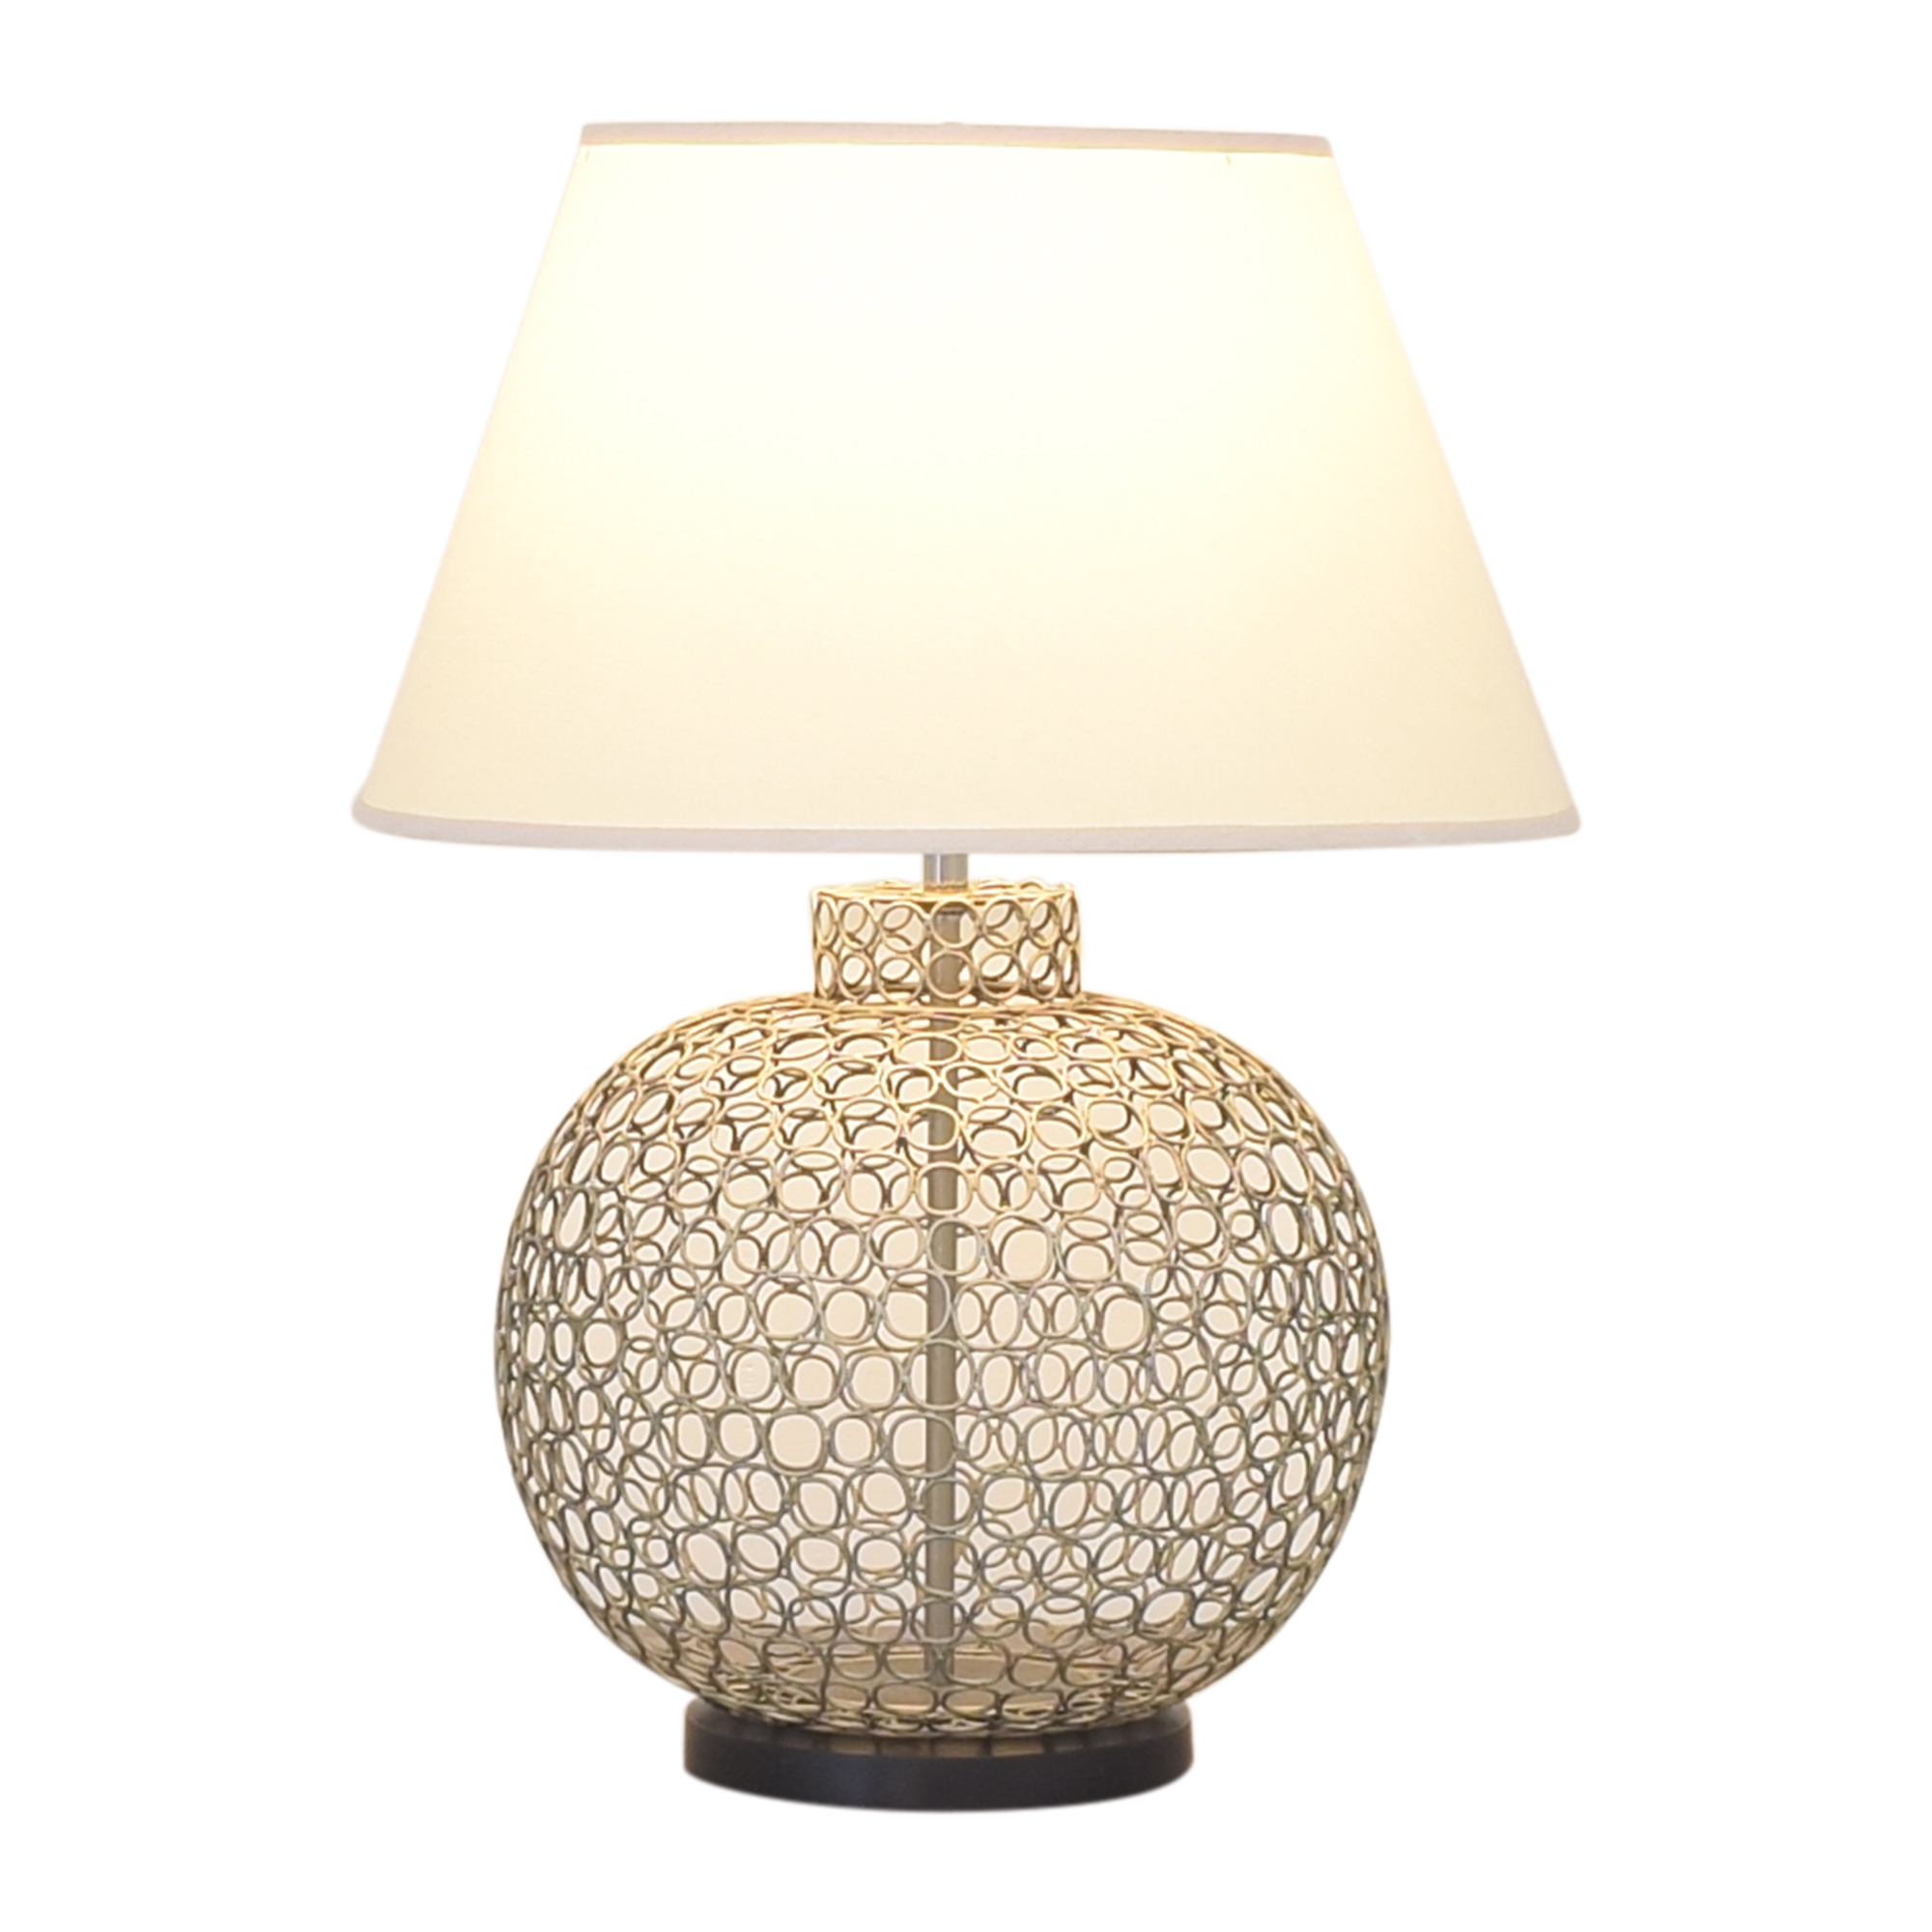 buy Ethan Allen Openweave Nickel Table Lamp Ethan Allen Lamps